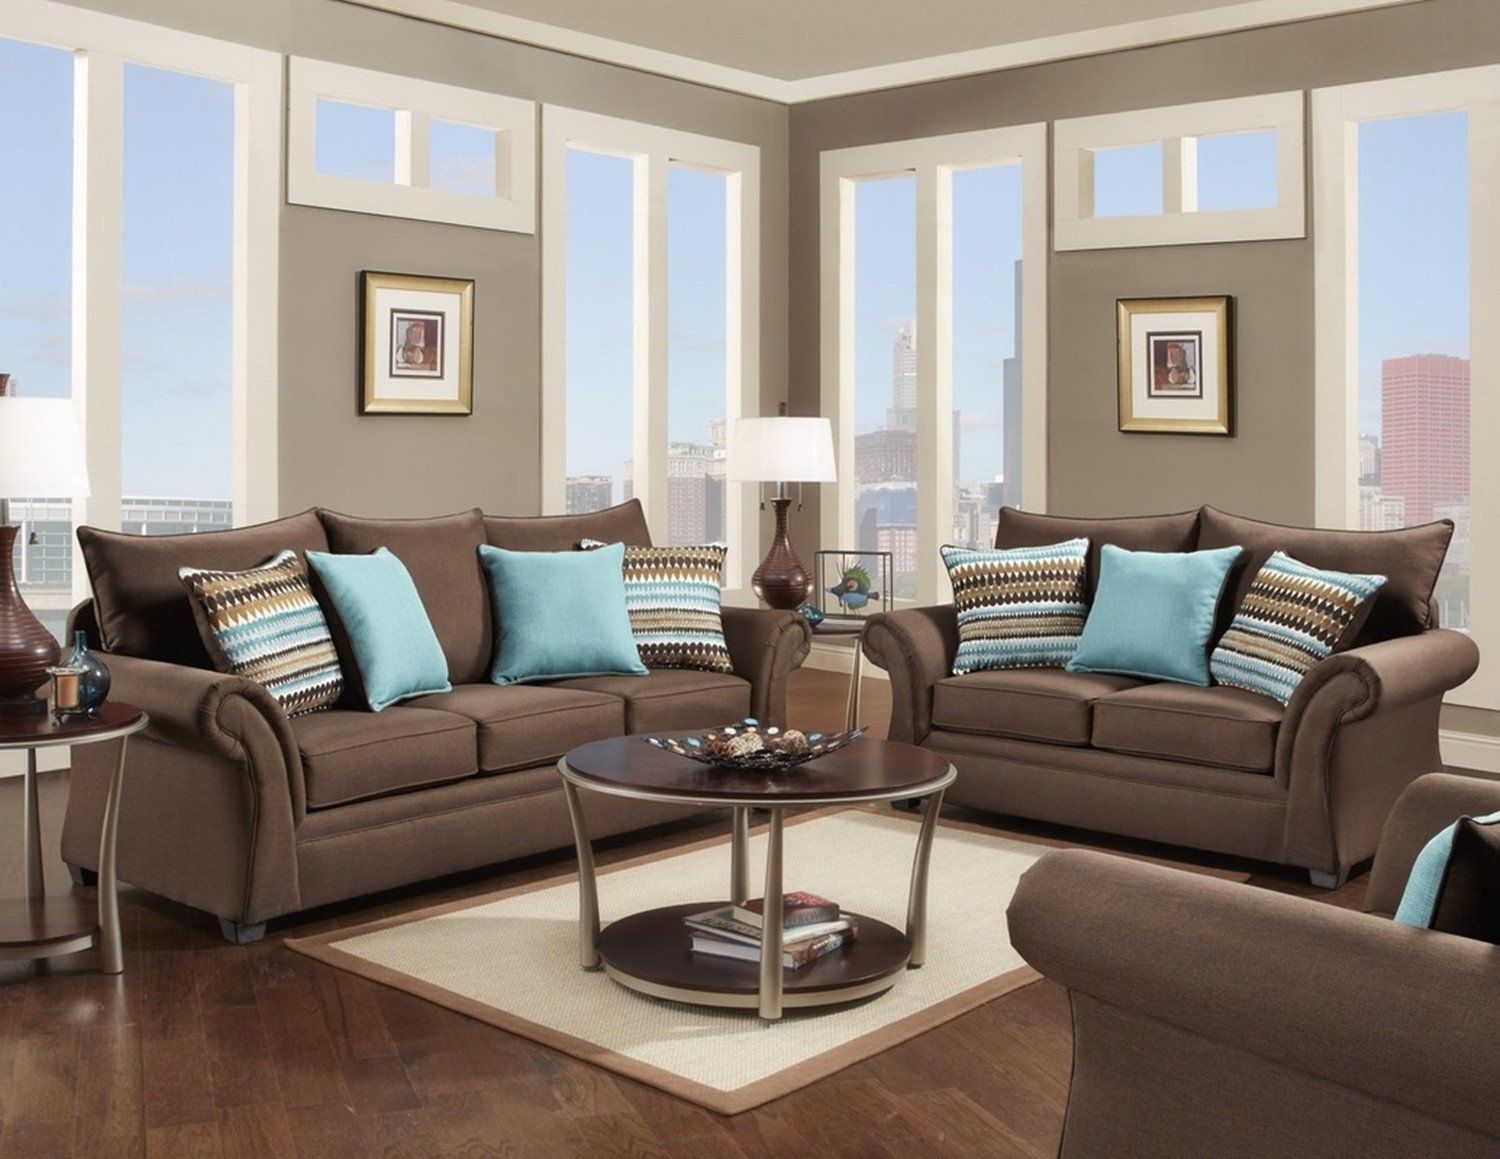 892 - The Paradigm Living Room Set - Grey | New living room ...